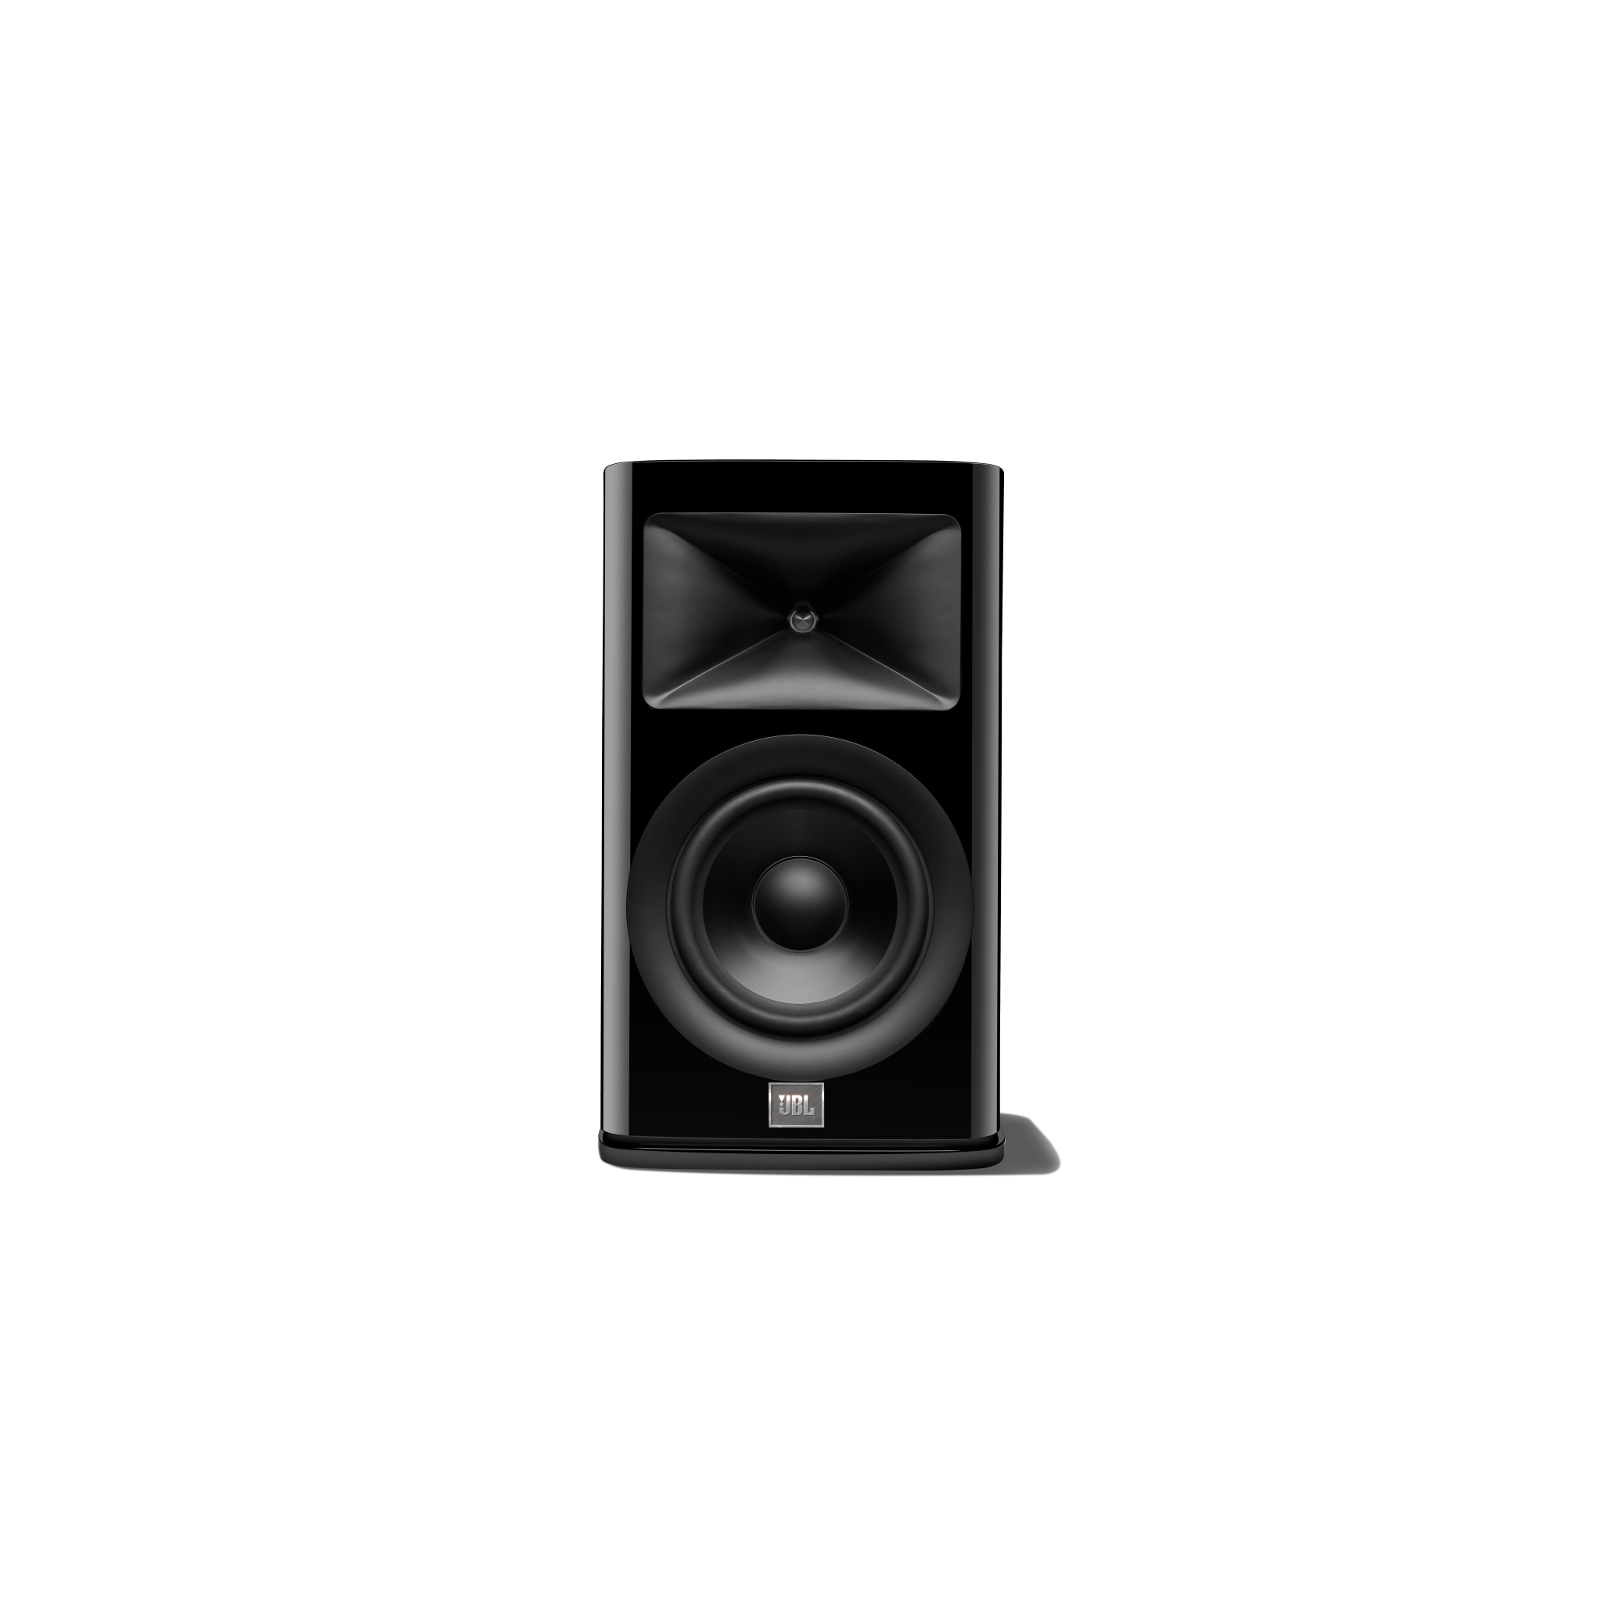 HDI-1600 - Black Gloss - 2-way 6.5-inch (165mm) Bookshelf Loudspeaker - Hero